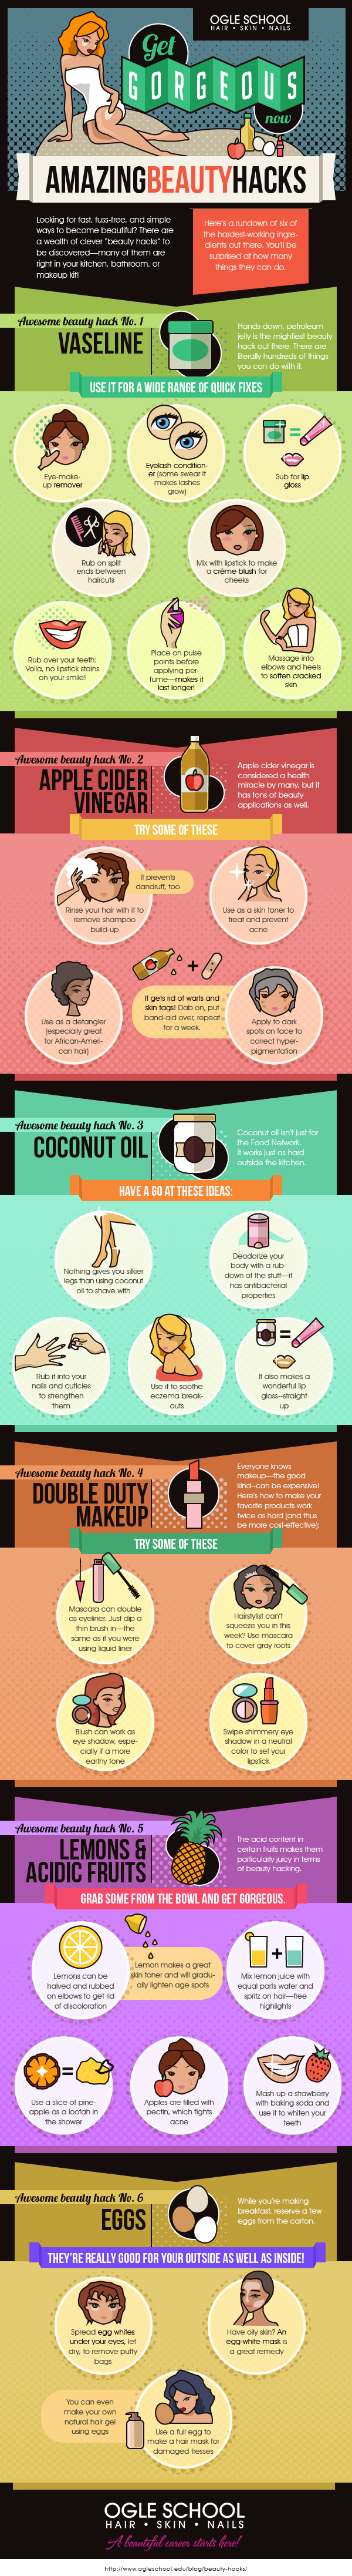 Get Gorgeous with these Amazing Beauty Hacks